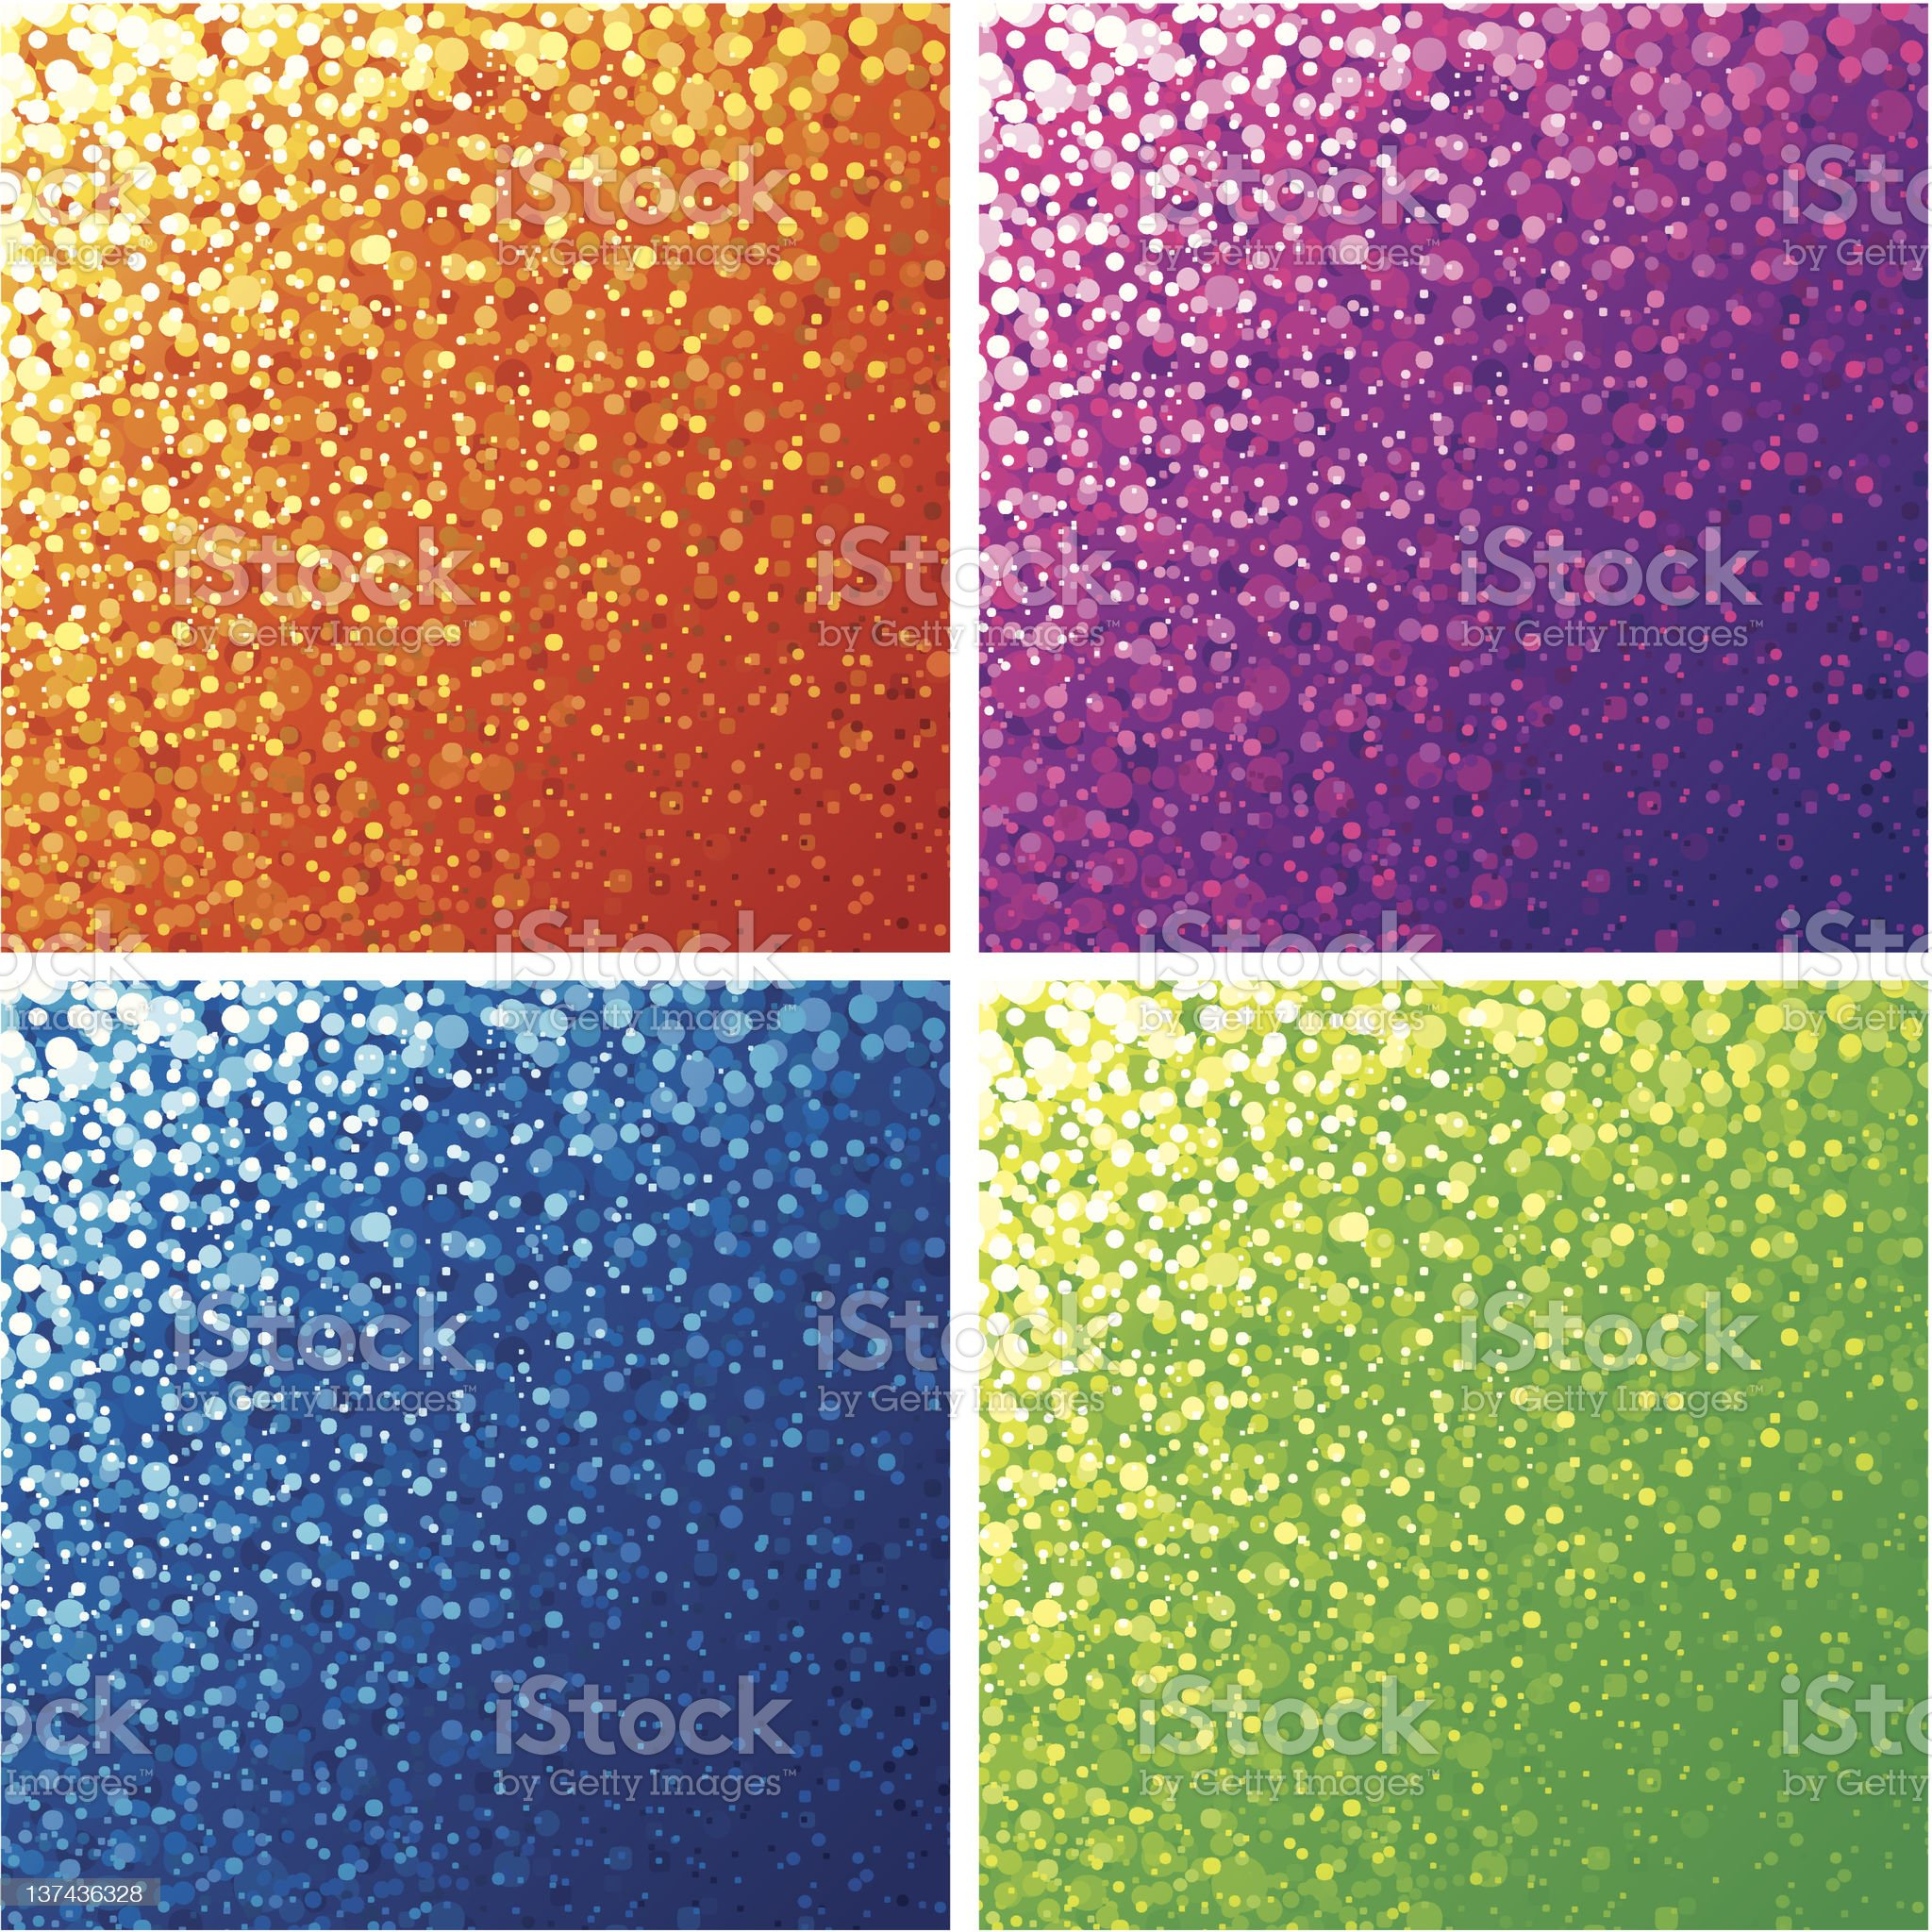 Shimmering Background royalty-free stock vector art